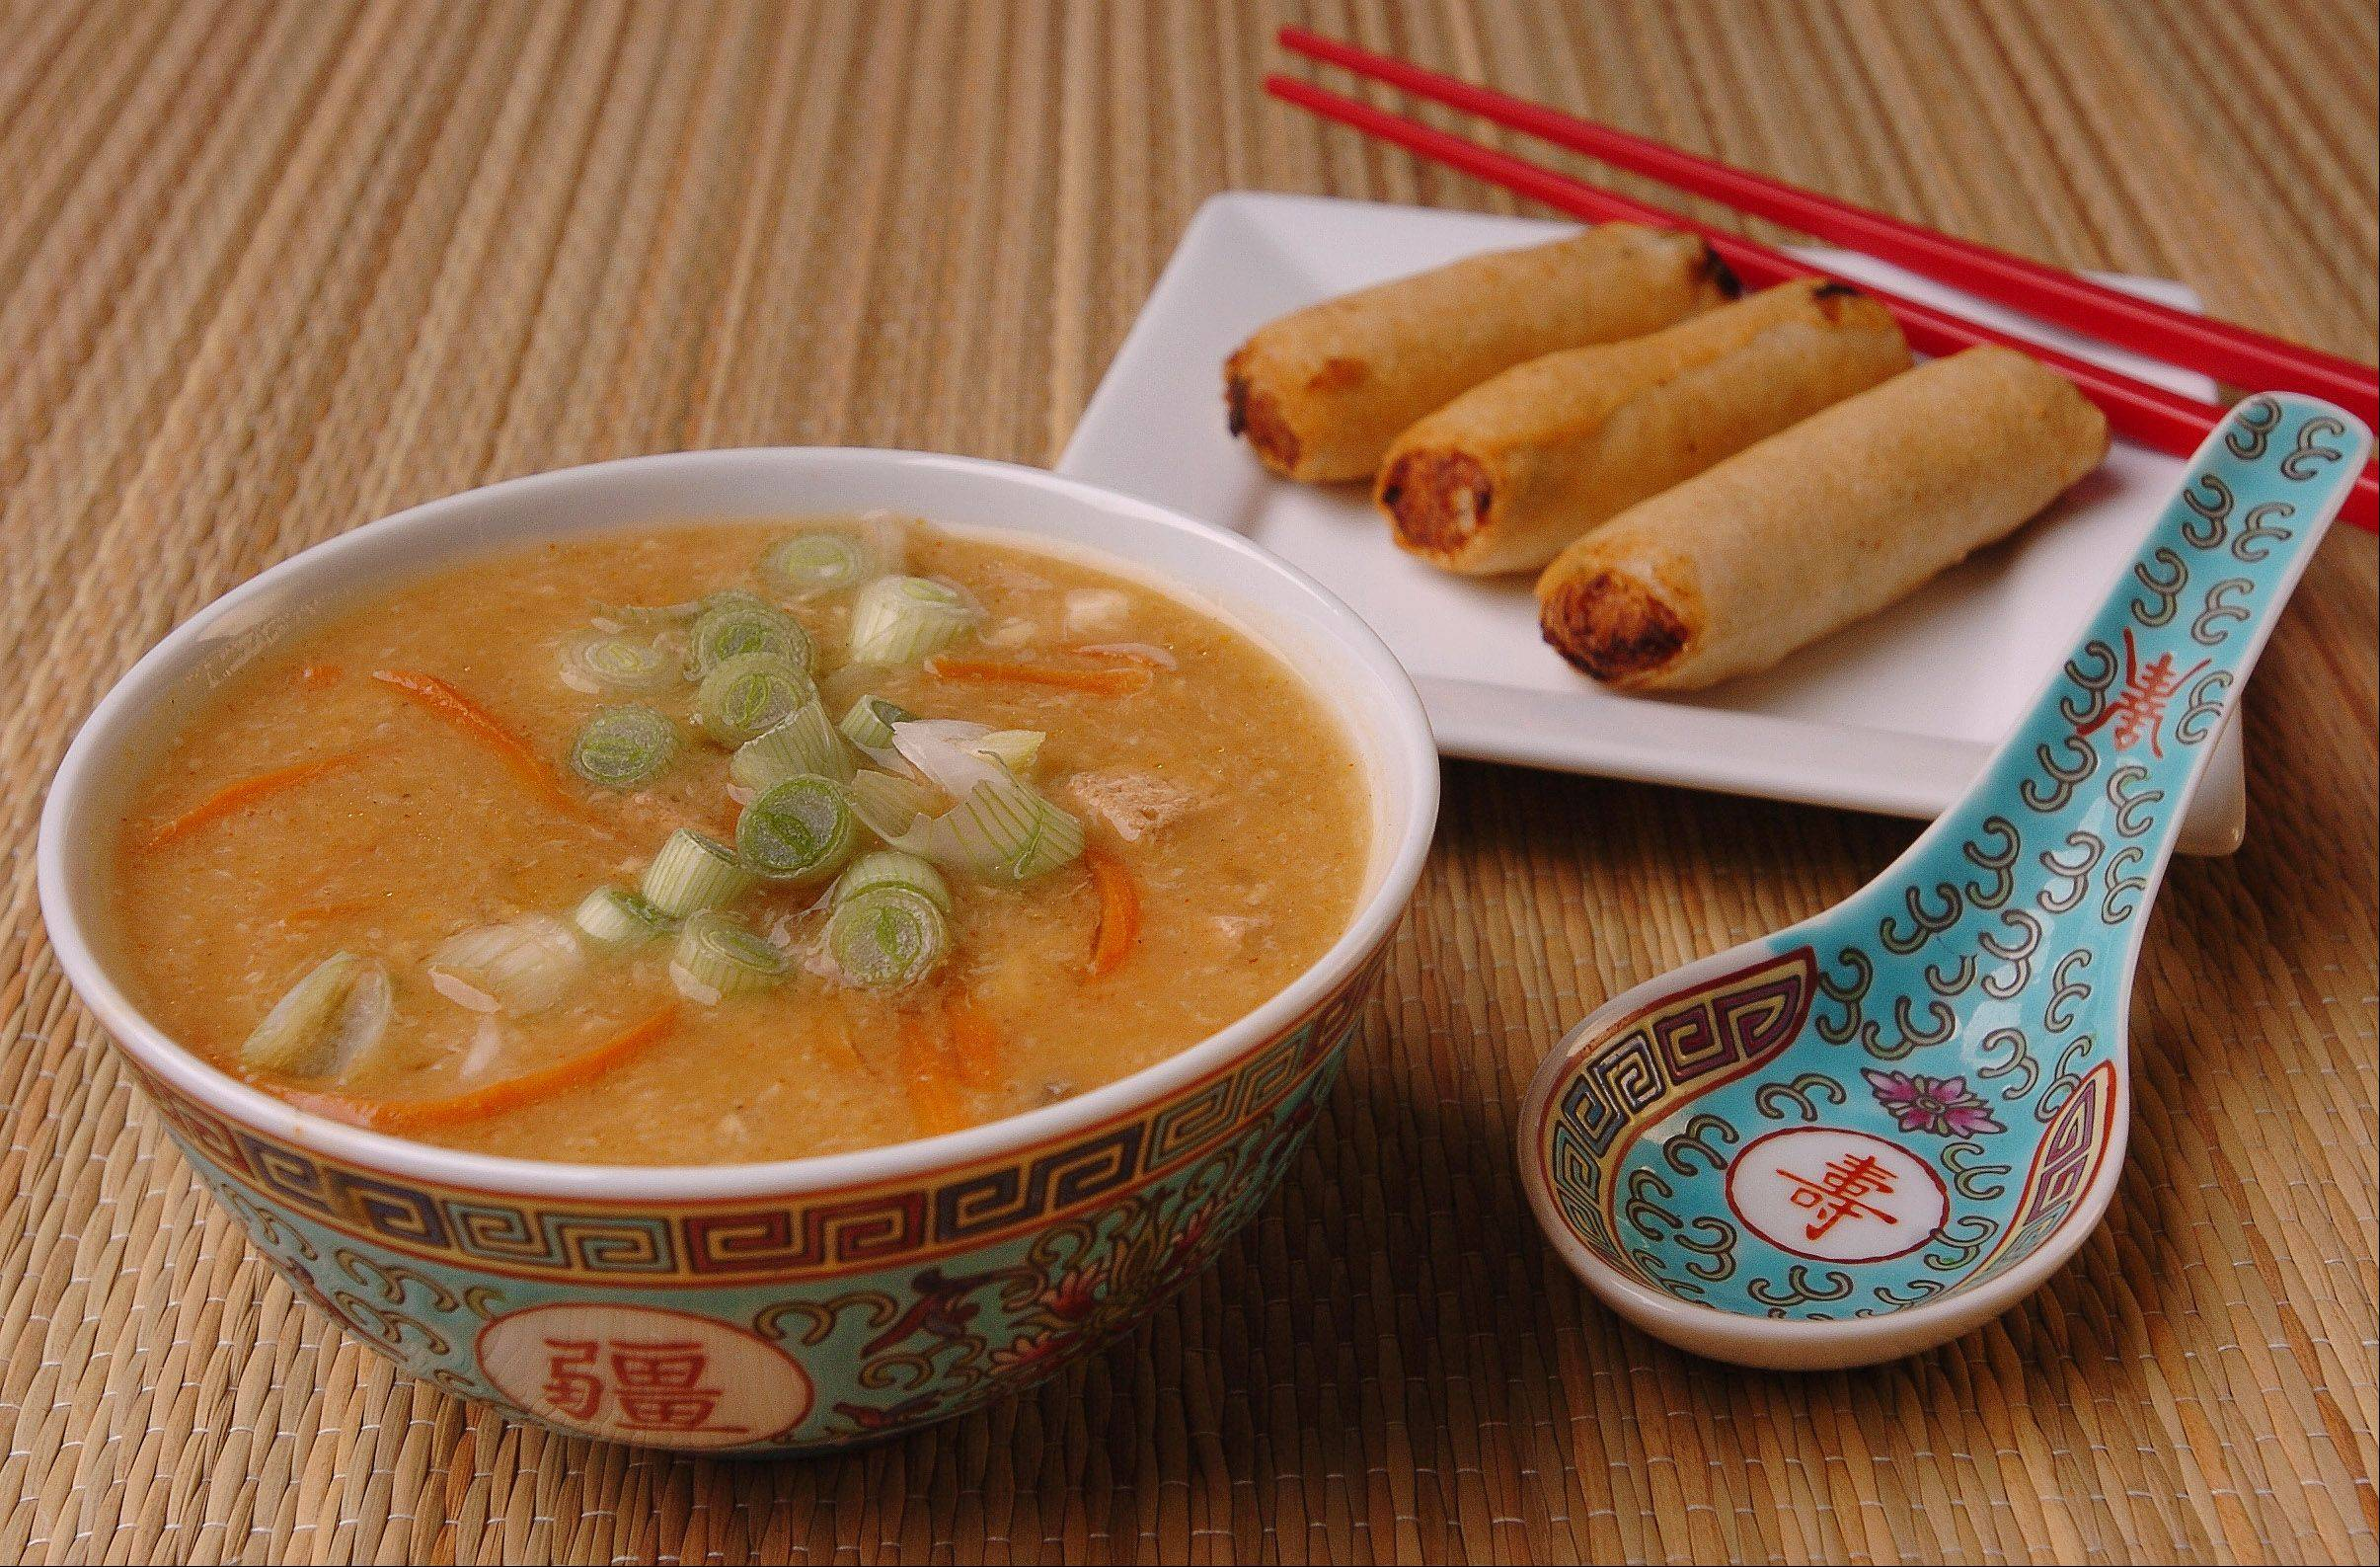 Soupalooza: Hot and sour soup cures what ails you